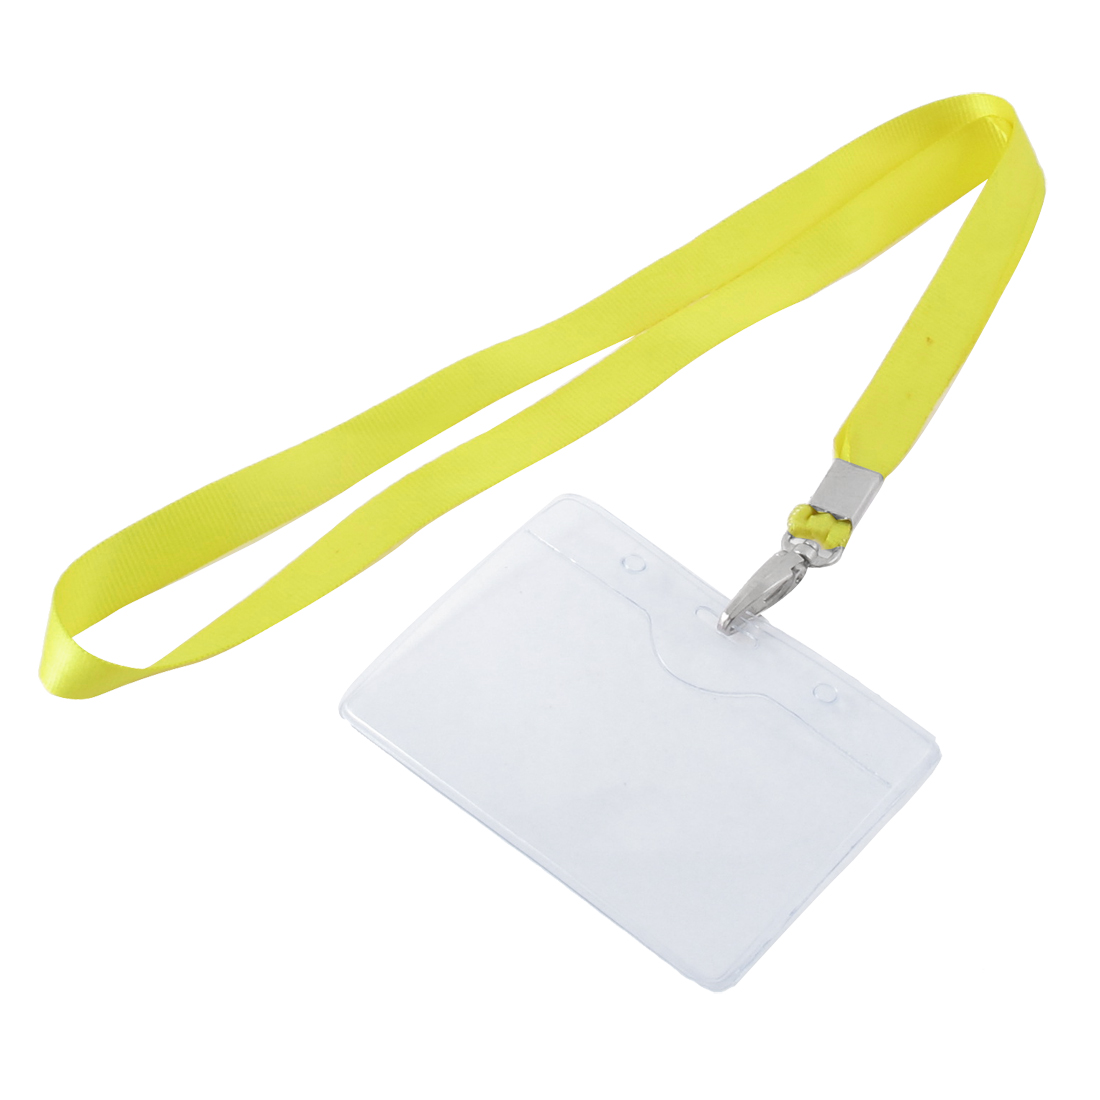 Lanyard Plastic Horizontal ID Office Employee Badge Card Holder Yellow Clear